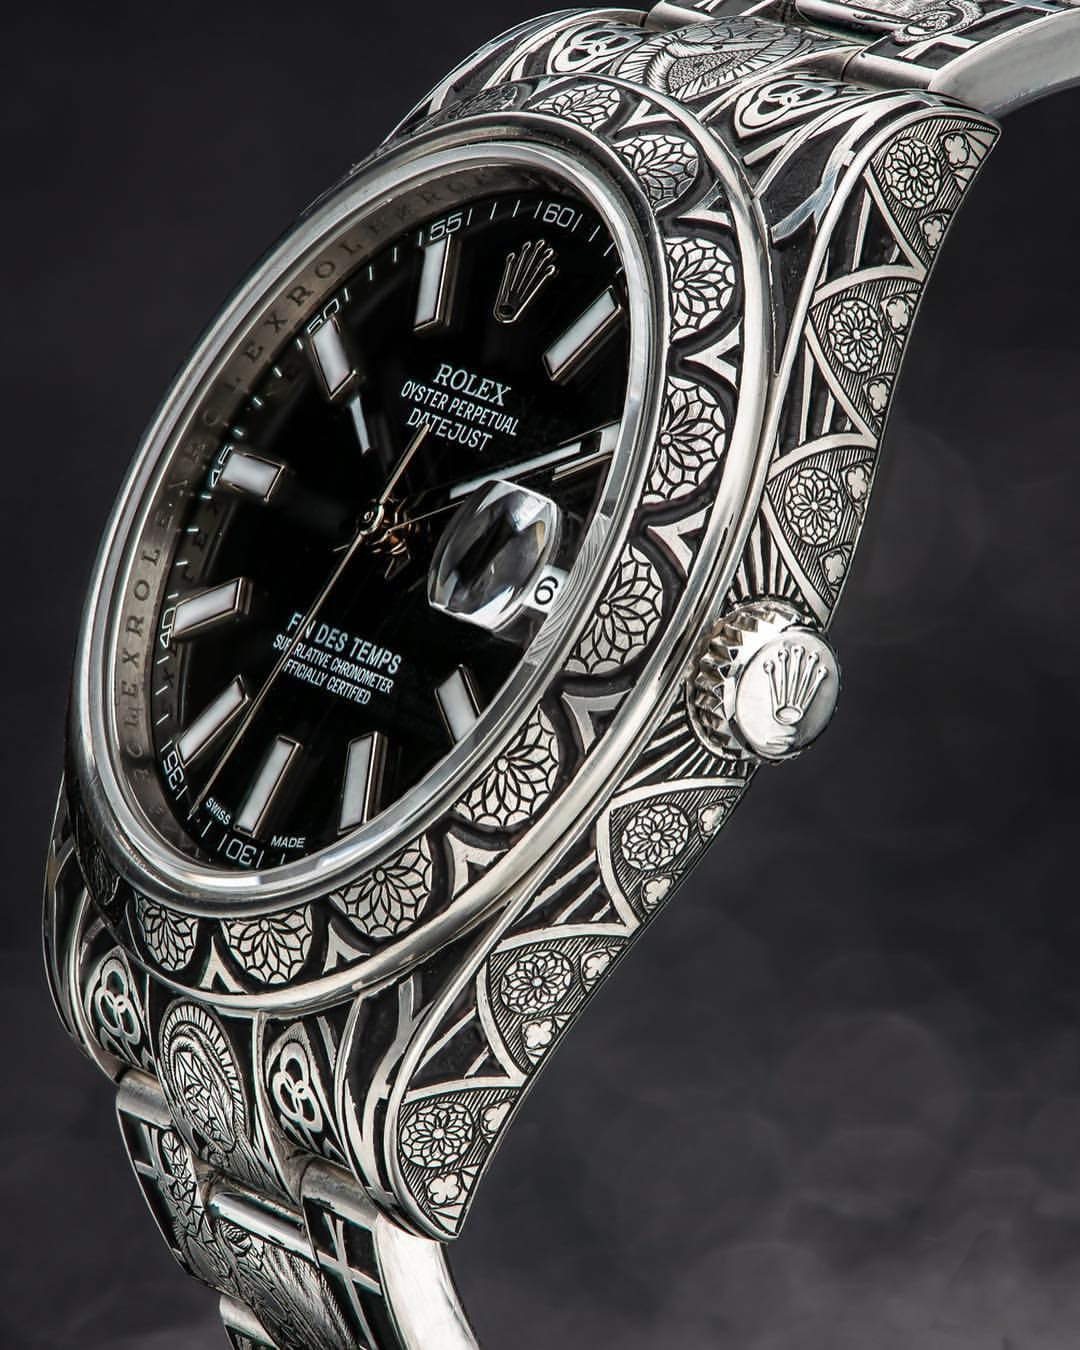 Stoked To Present To You All The Newest Findestemps Watch I Engraved The Theme For This Watch Is Inspired By Gothi Rolex Rolex Datejust Rolex Watches For Men